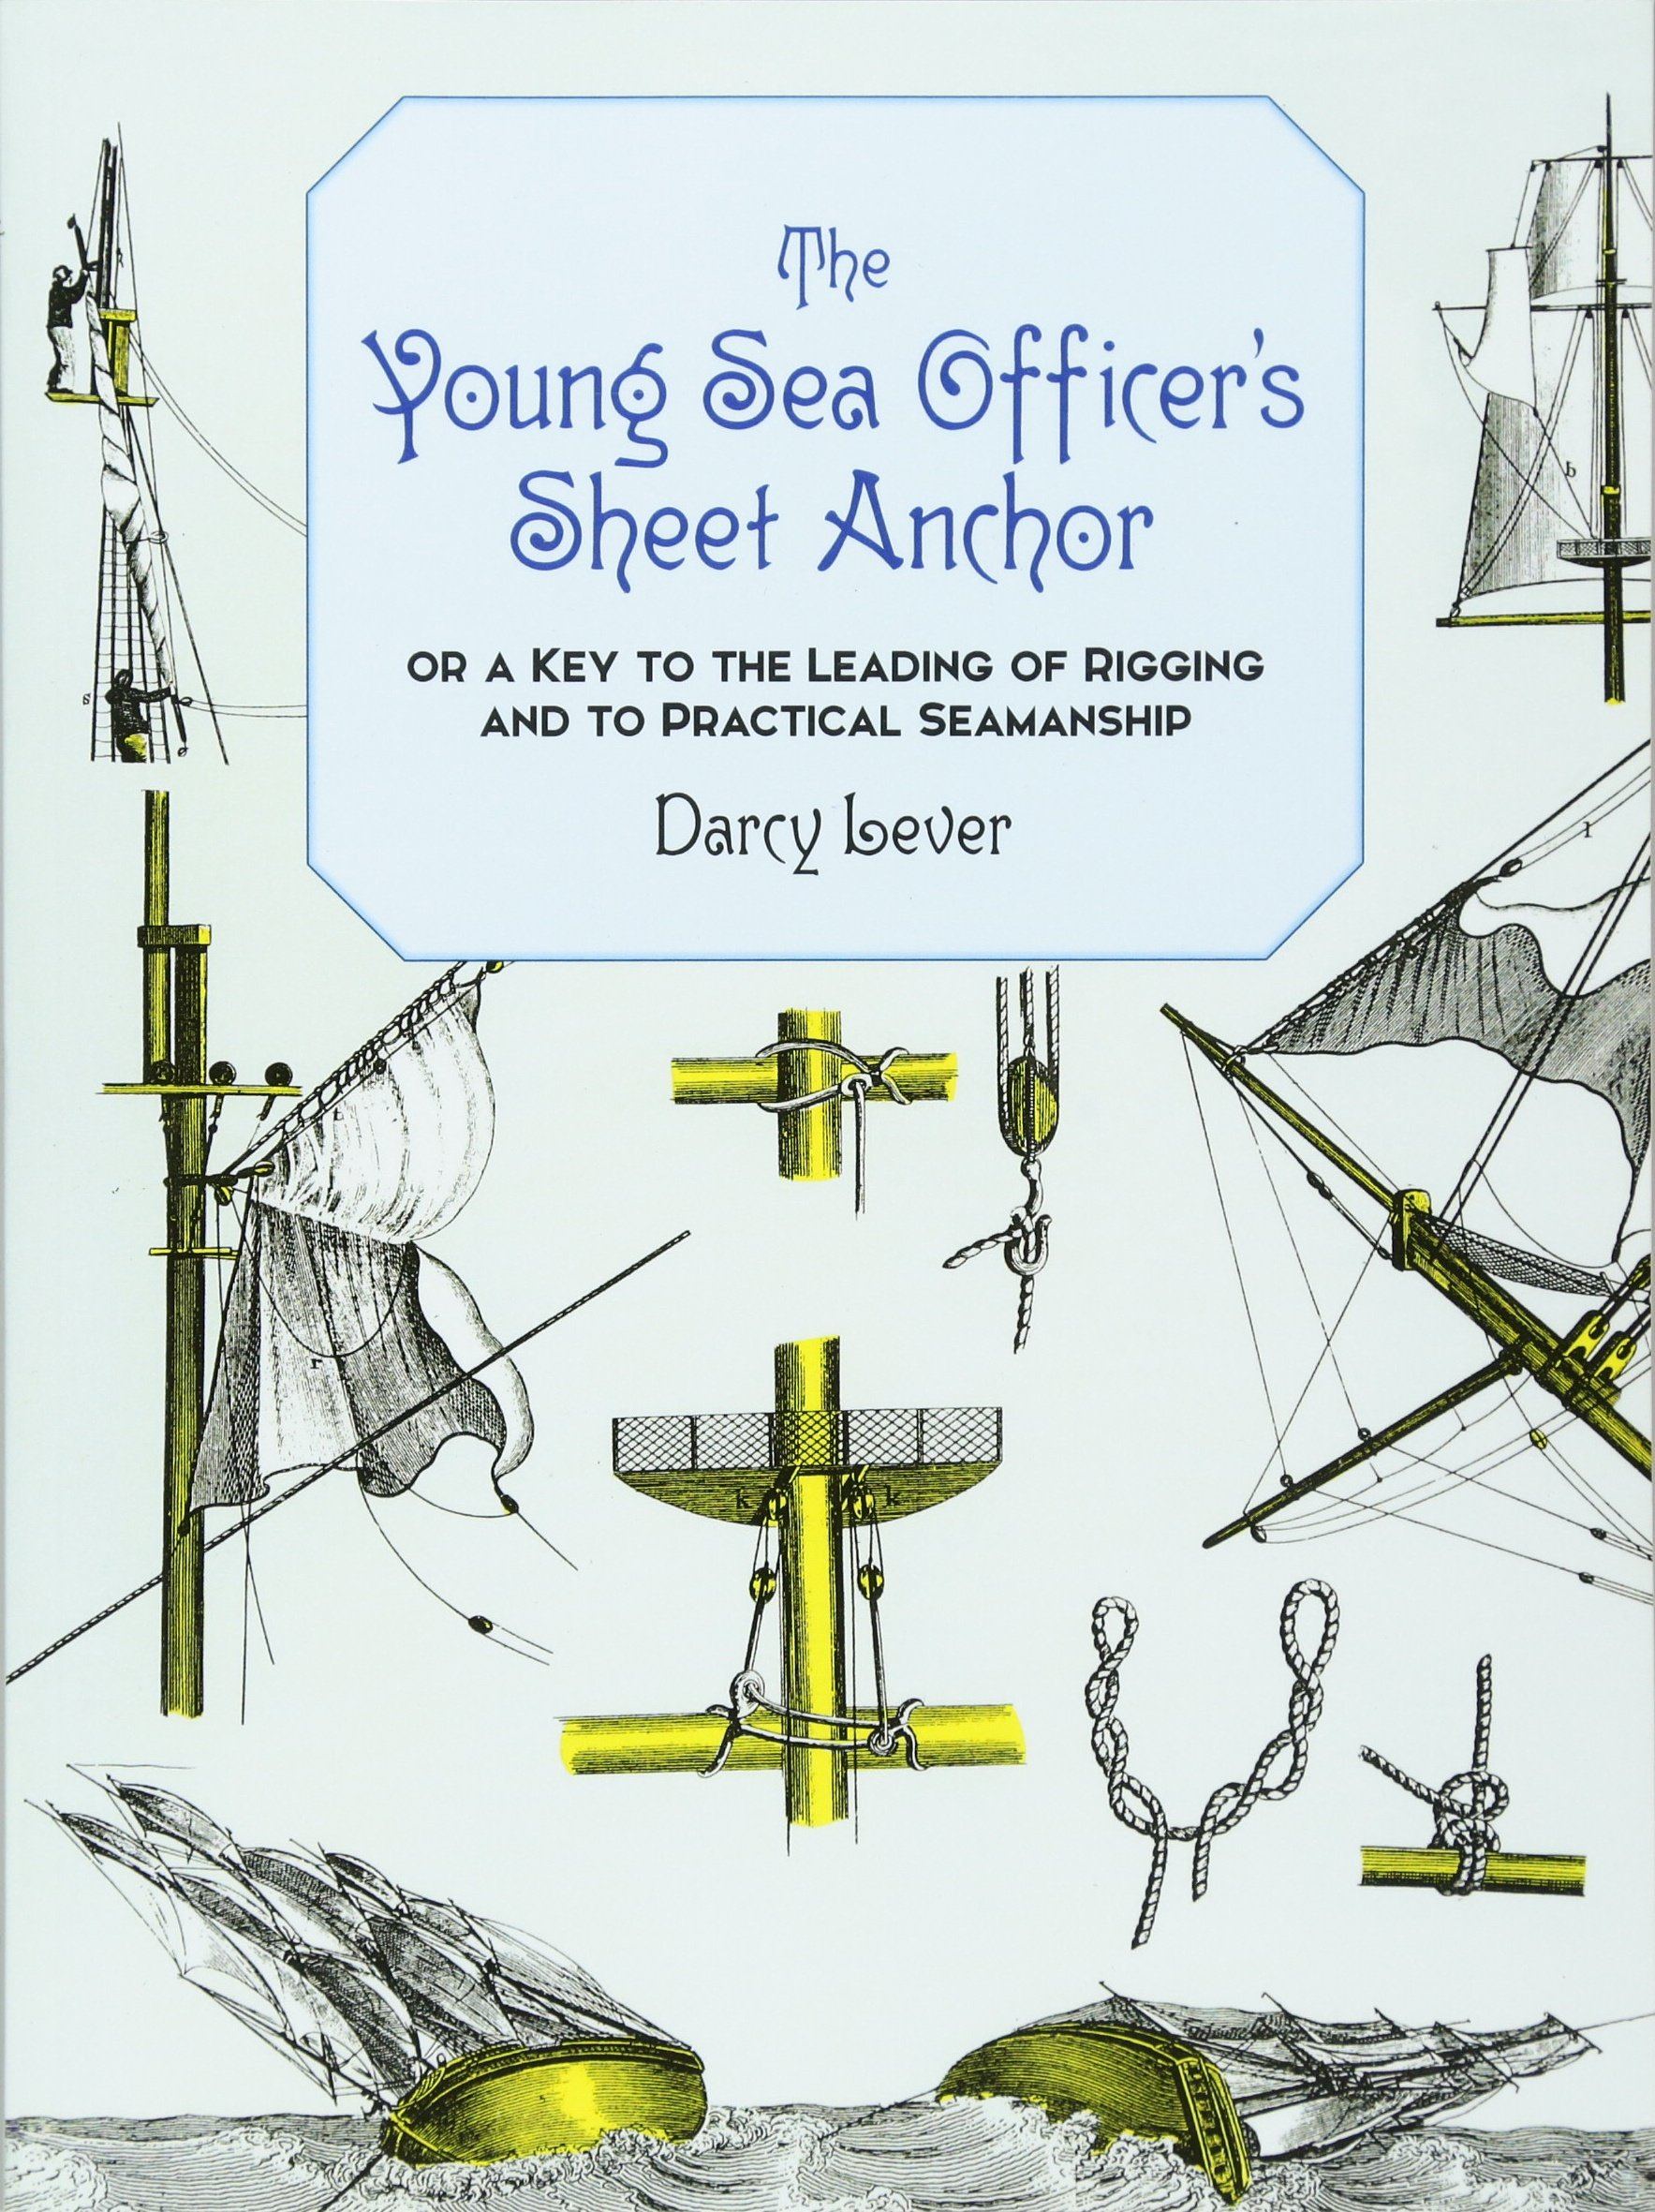 Image OfThe Young Sea Officer's Sheet Anchor : Or A Key To The Leading Of Rigging And To Practical Seamanship